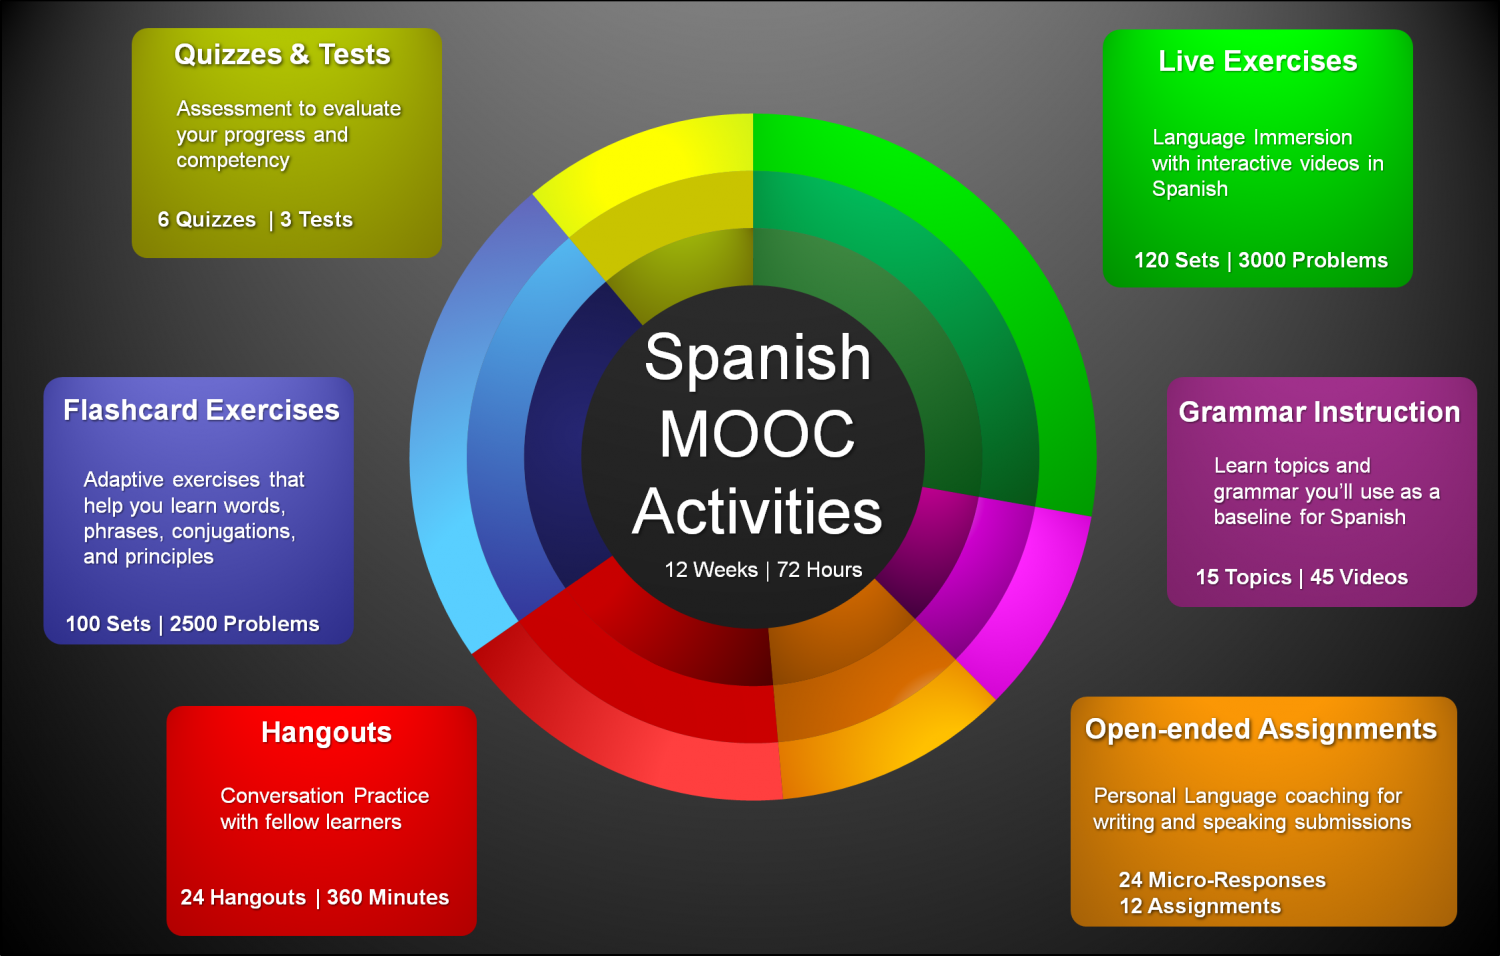 SpanishMOOC Activities Infographic